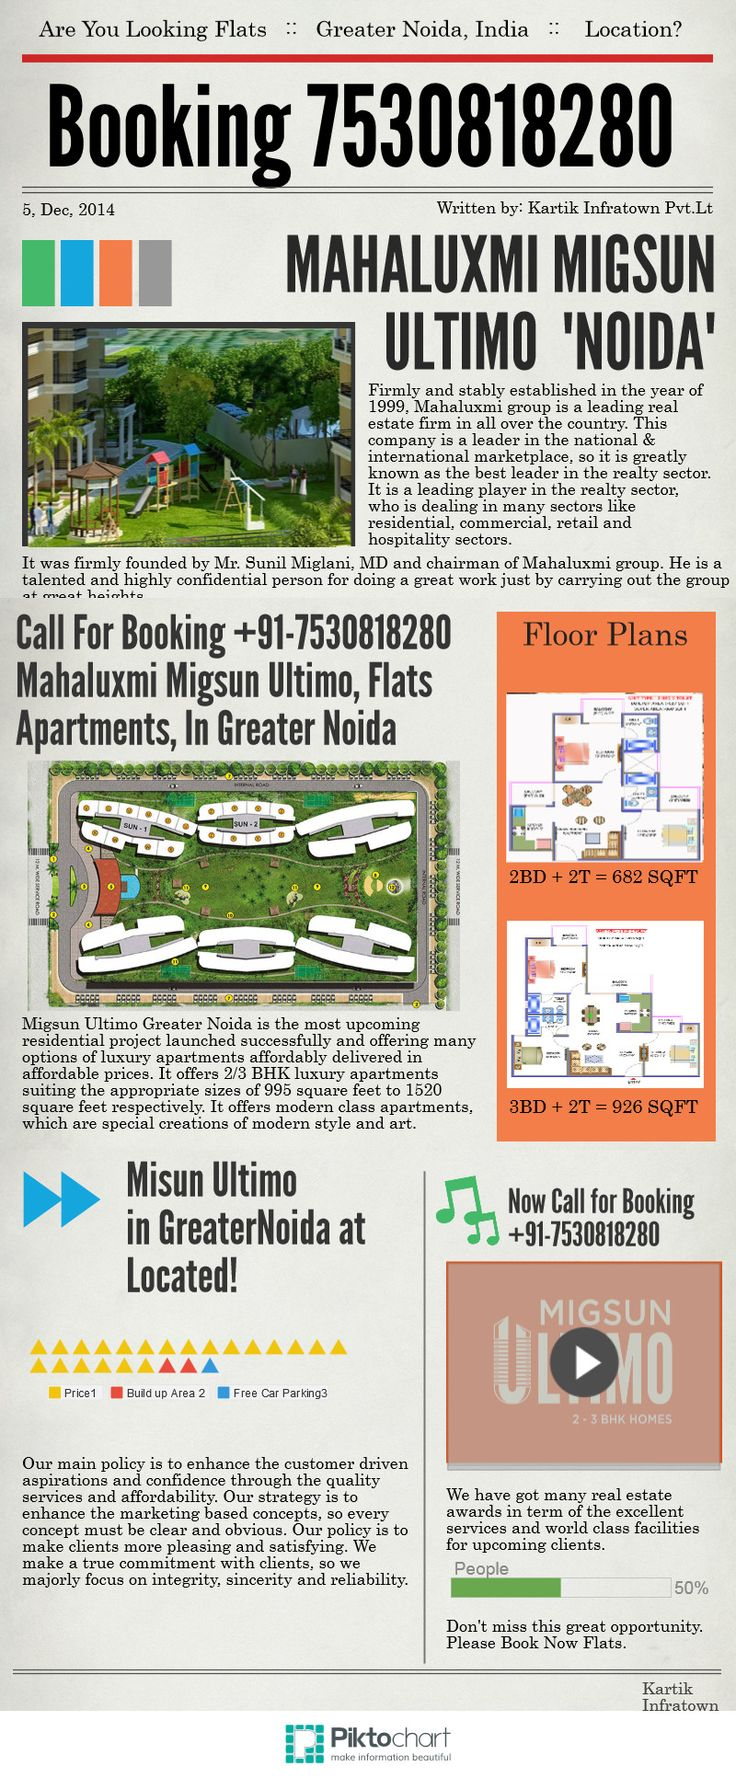 Migsun Ultimo Greater Noida